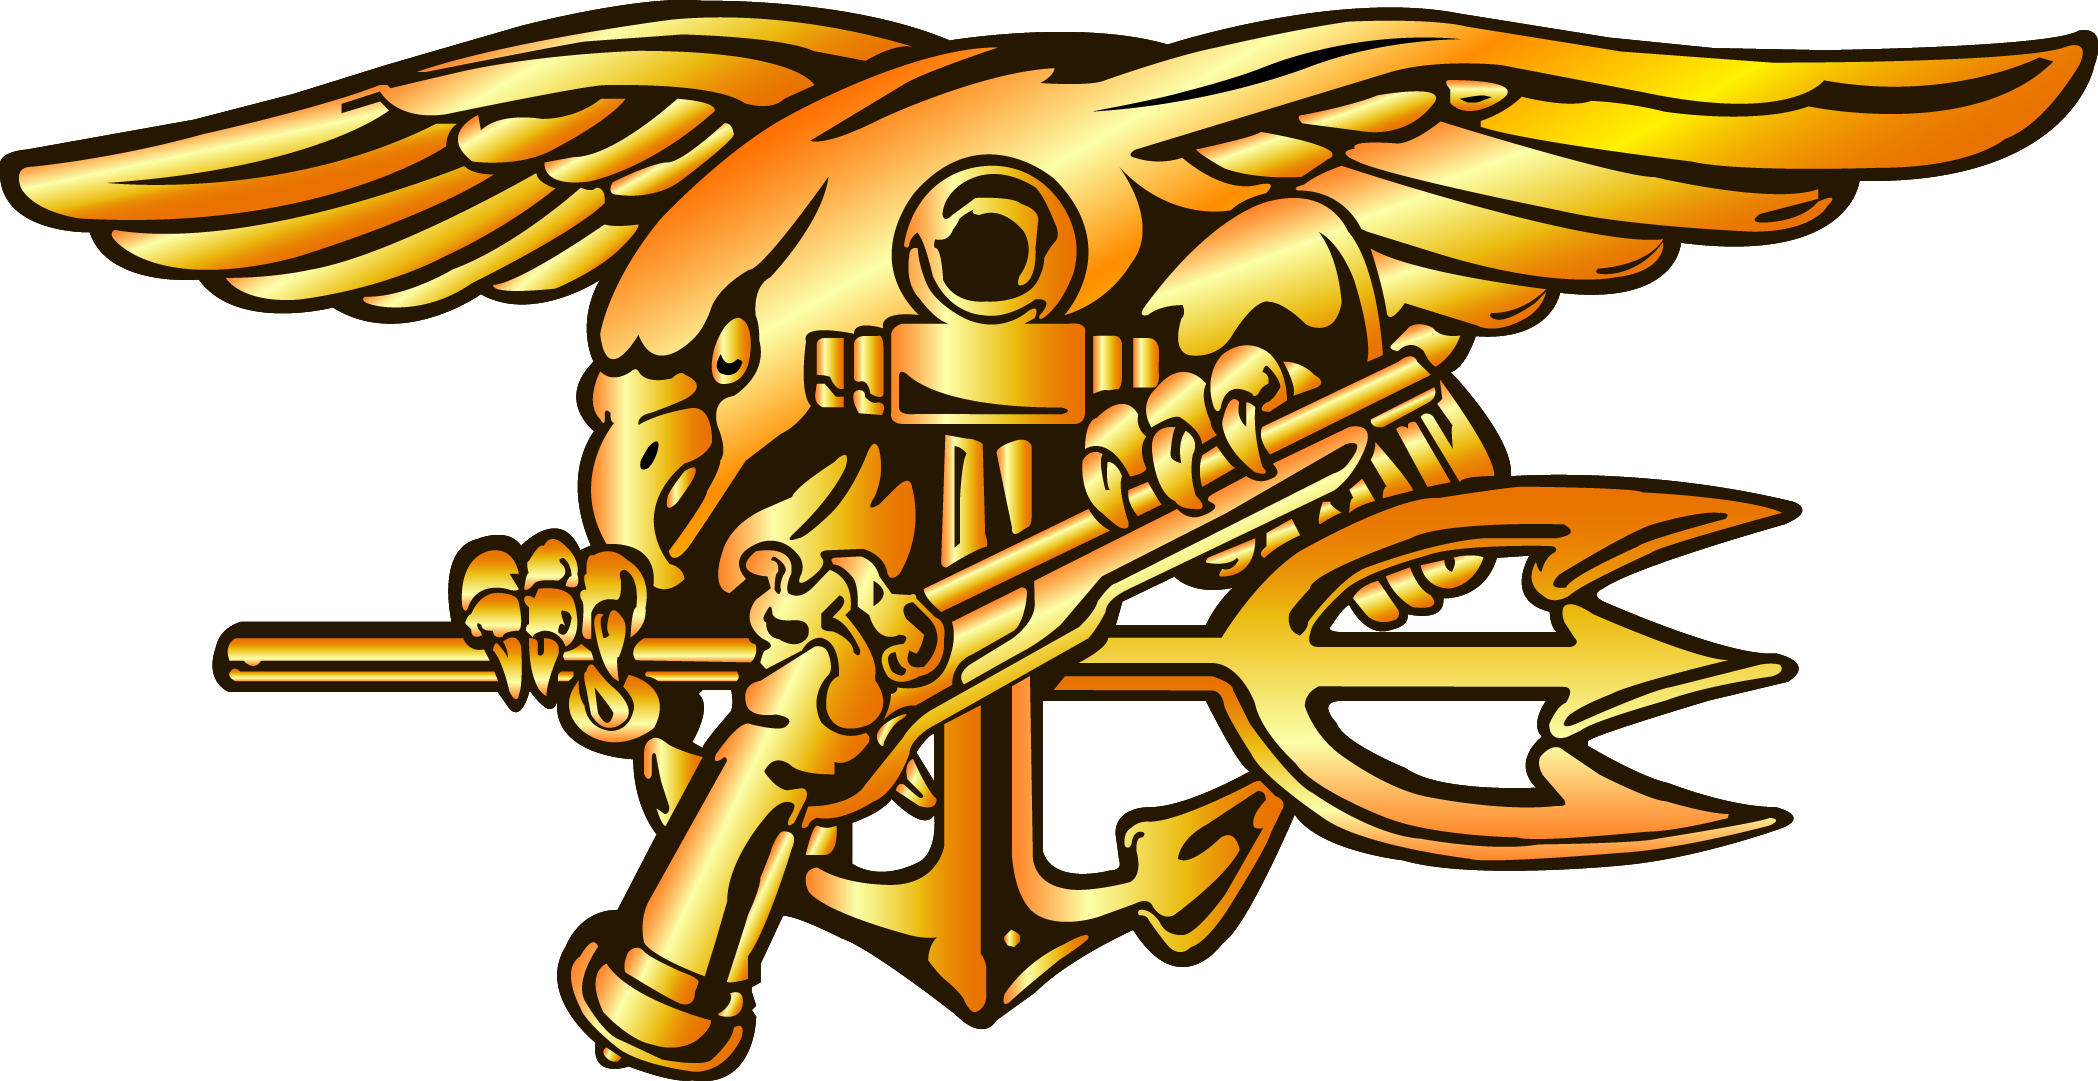 Navy Official Seal Clipart - Clipart Kid